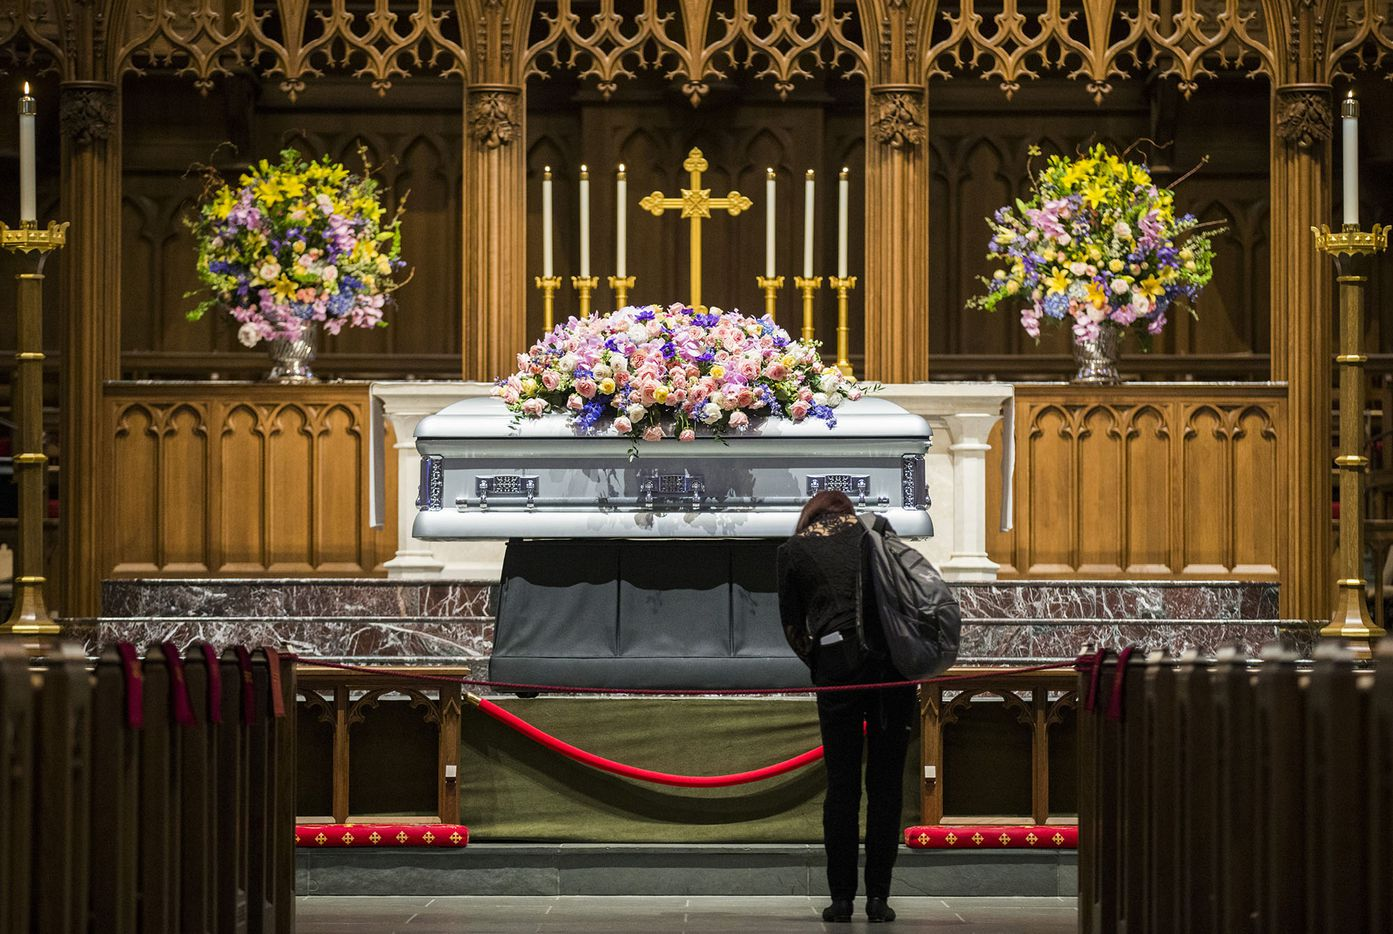 A woman bows in front of the casket of former first lady Barbara Bush on Friday, April 20, 2018 at St. Martin's Episcopal Church in Houston. Bush died on Tuesday and her funeral services are on Saturday. (Ashley Landis/The Dallas Morning News)